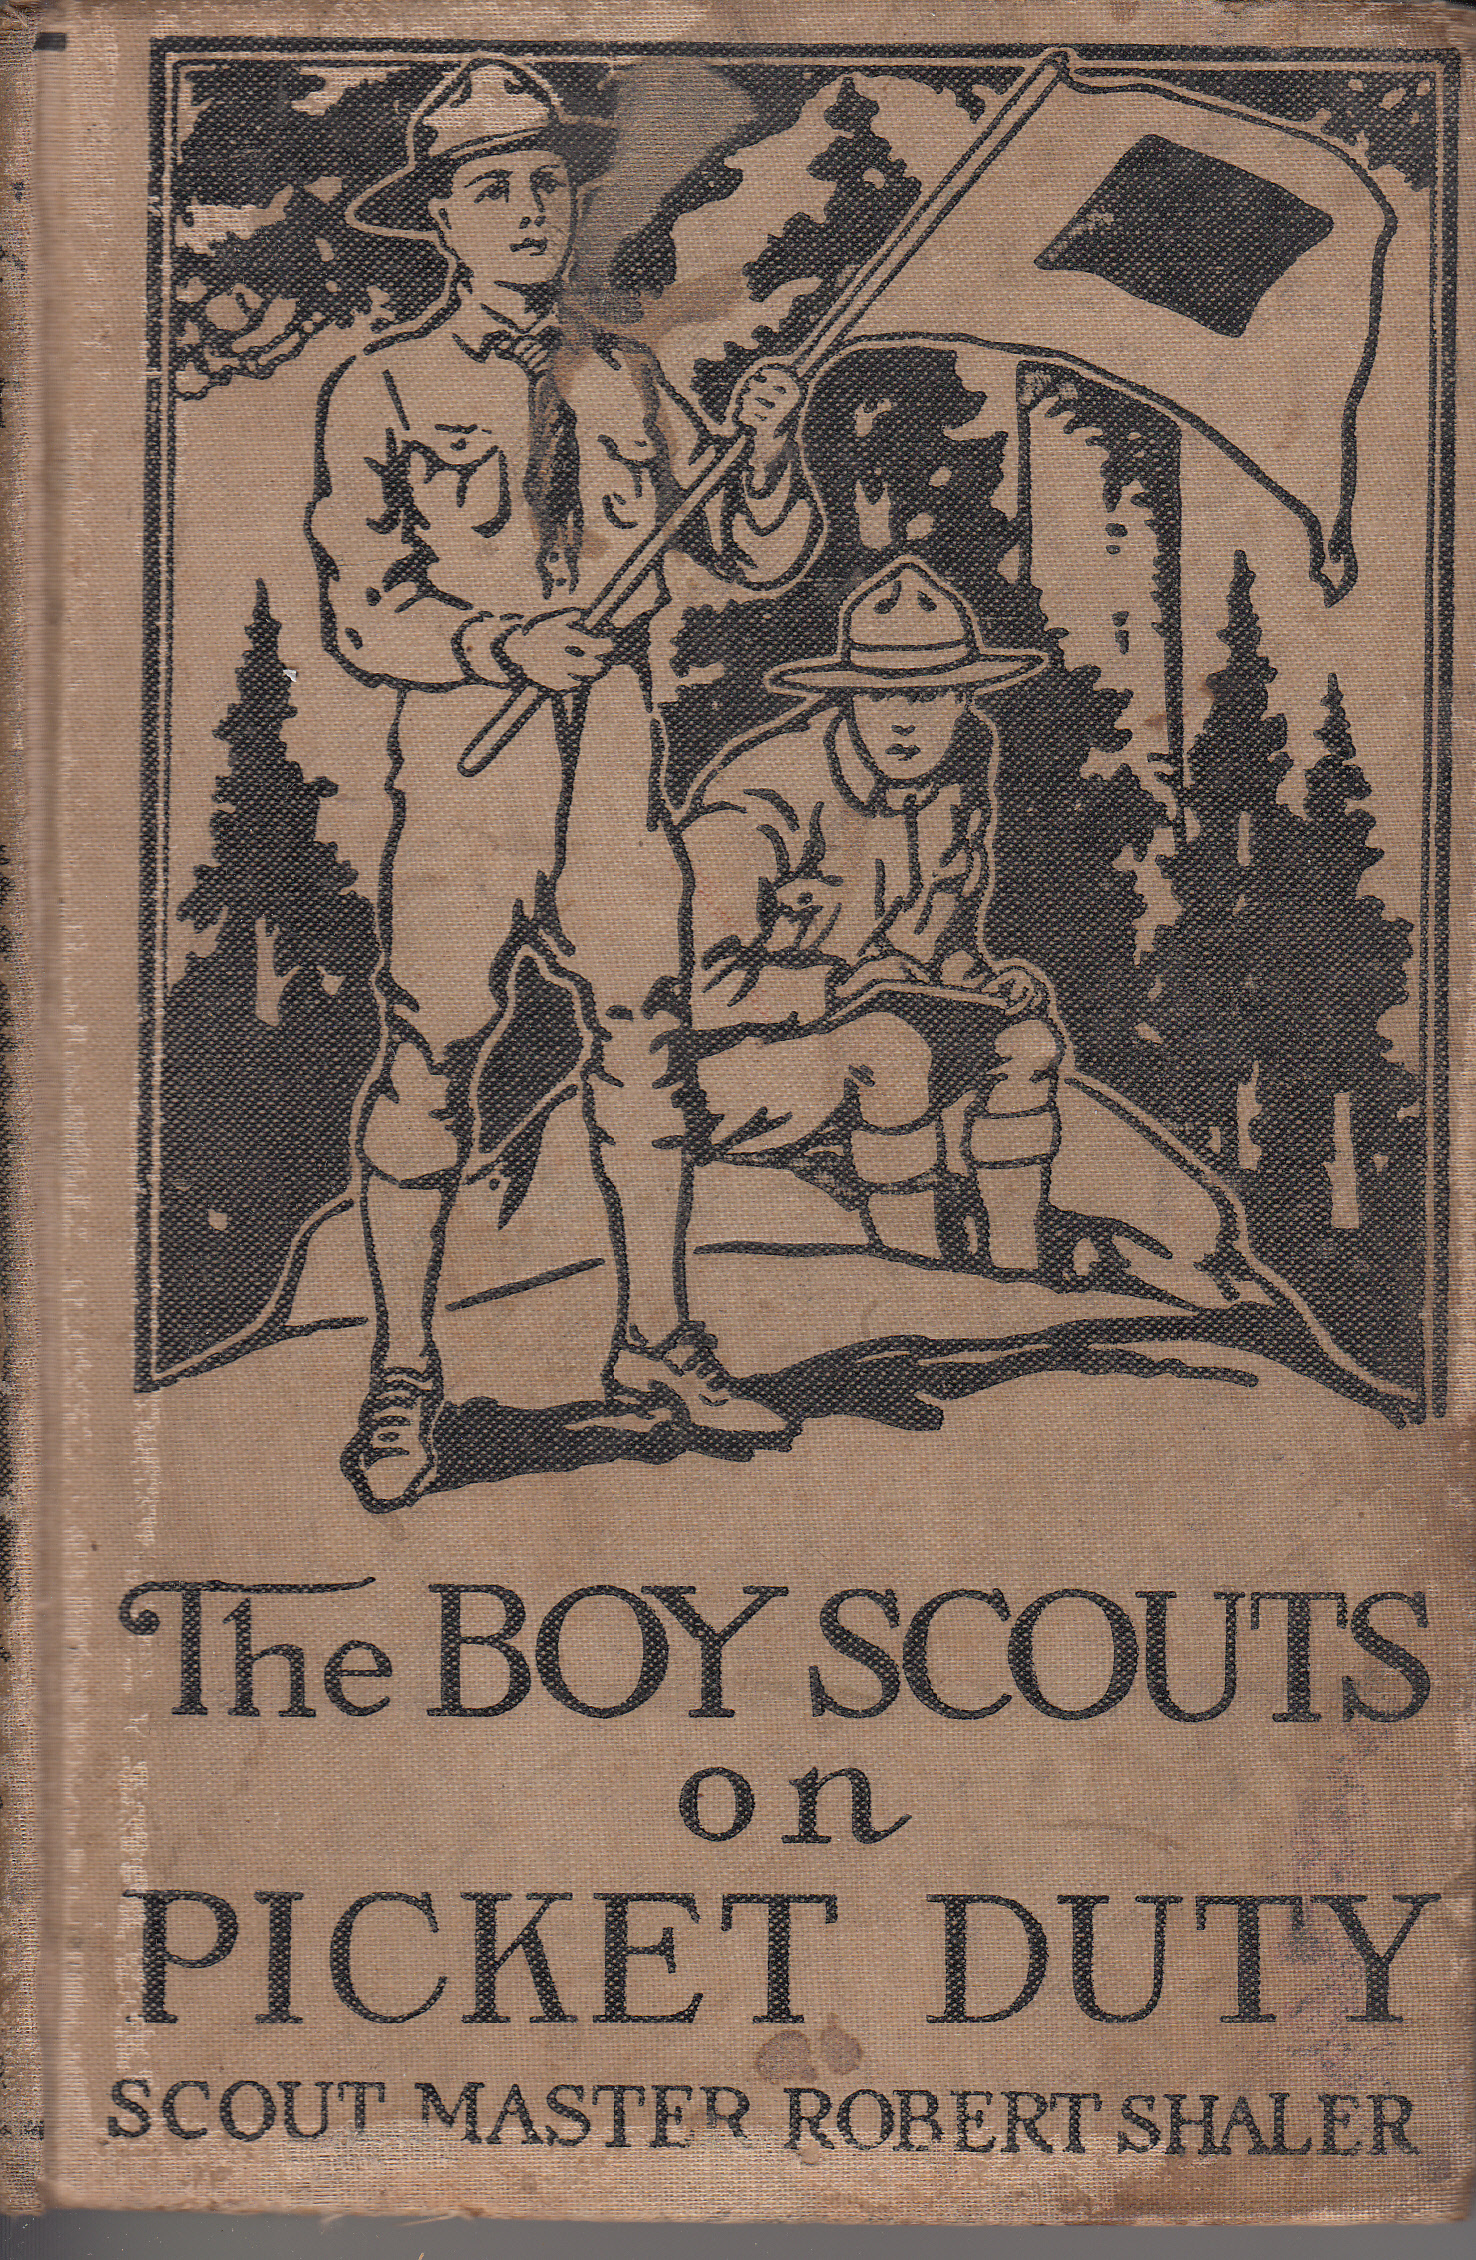 The Boy Scouts on Picket Duty Robert Shaler